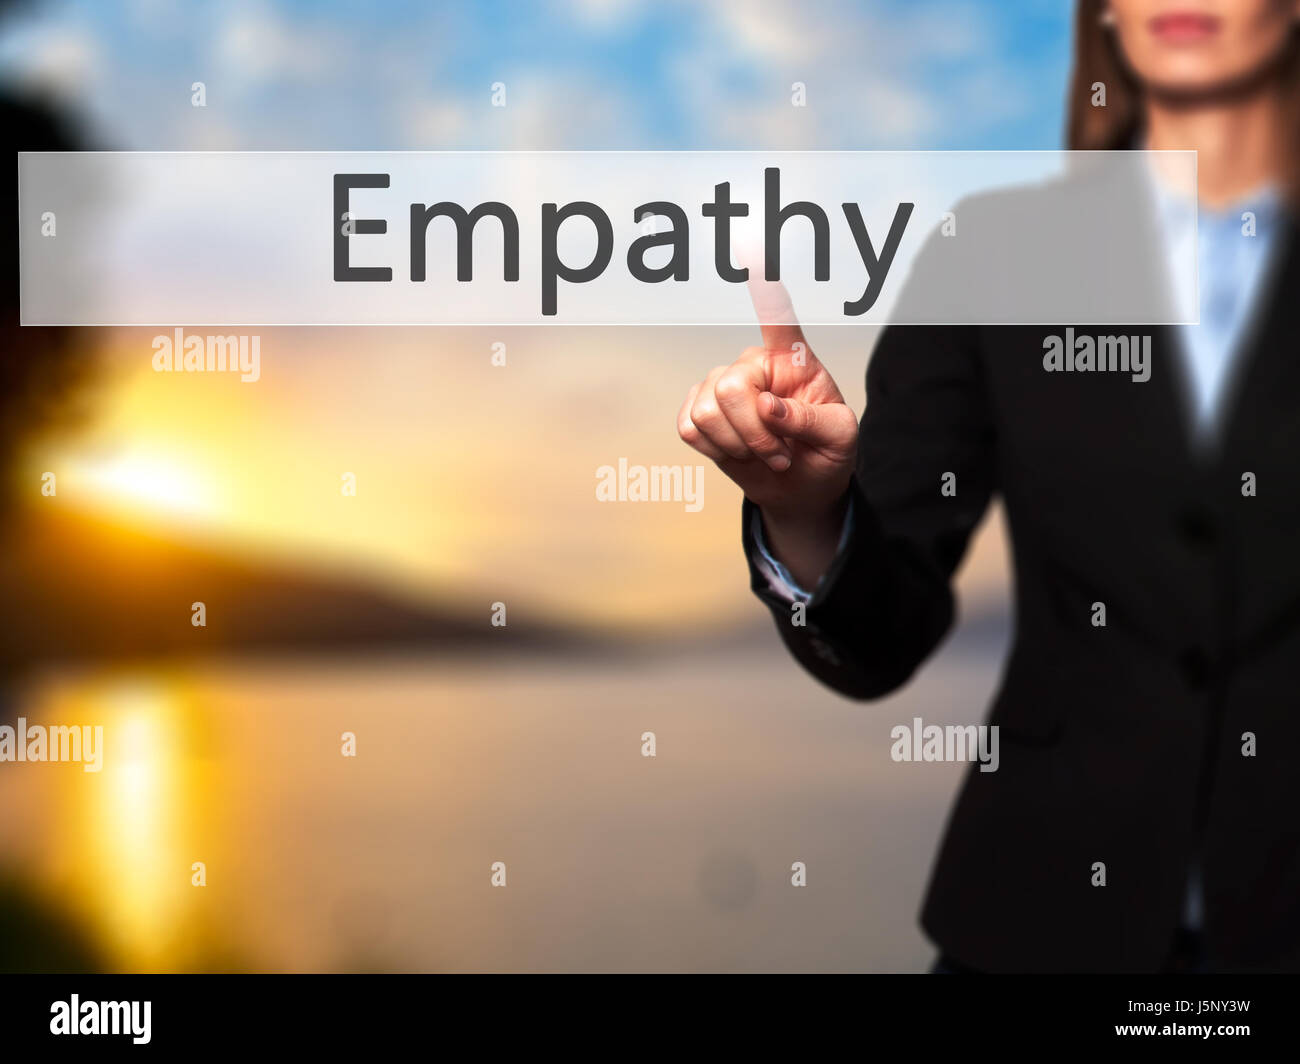 Empathy - Businesswoman hand pressing button on touch screen interface. Business, technology, internet concept. - Stock Image